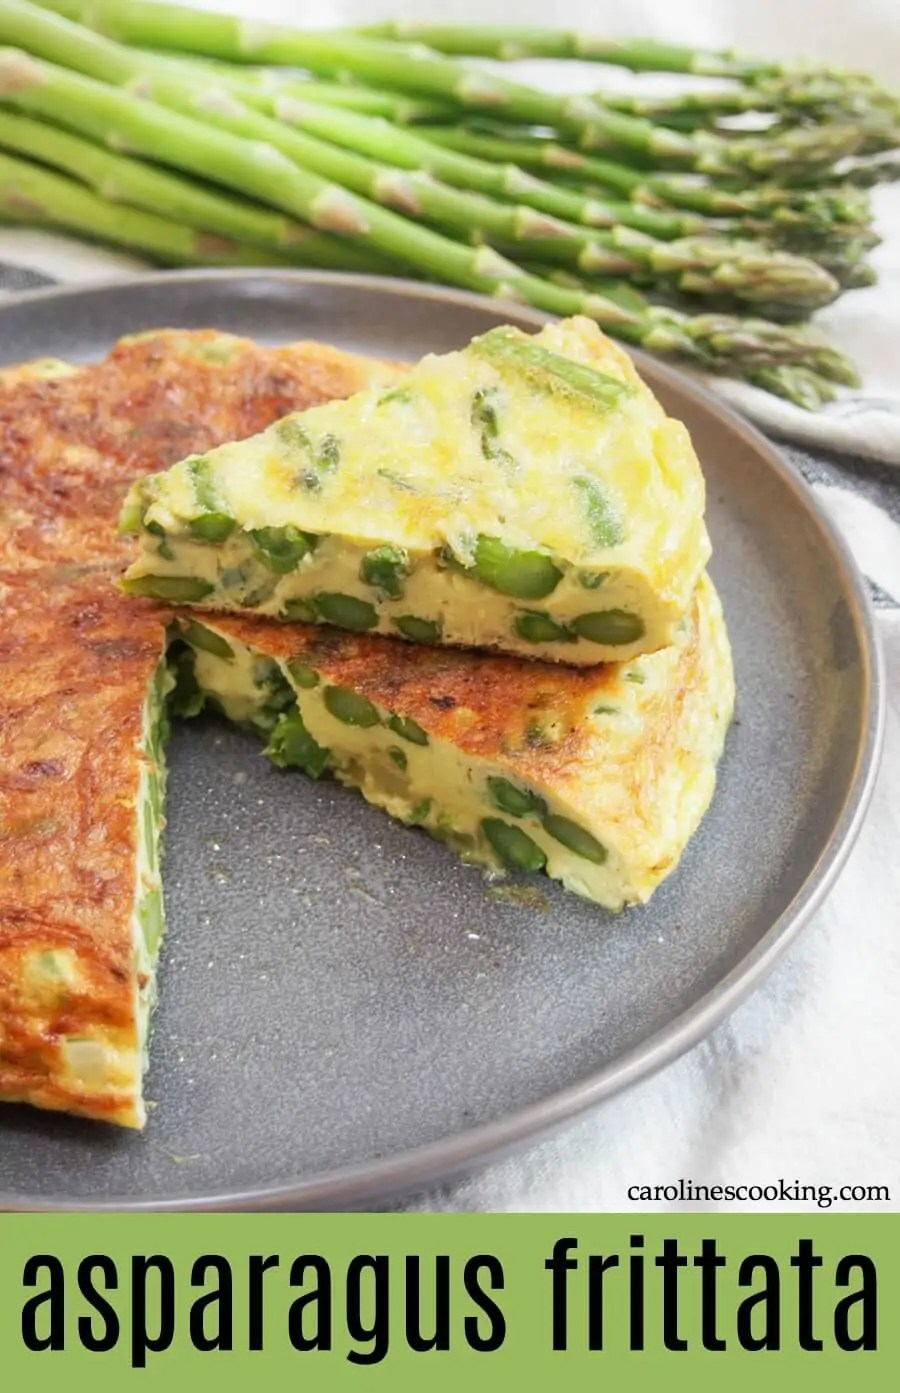 This asparagus frittata is easy to make and the kind of dish that's as good at breakfast as lunch or dinner. With simple flavors, it's both fresh and comforting - plus easy to adapt too! Serve as it is, with salad, or as a side along side other mains. #frittata #asparagus #vegetarian